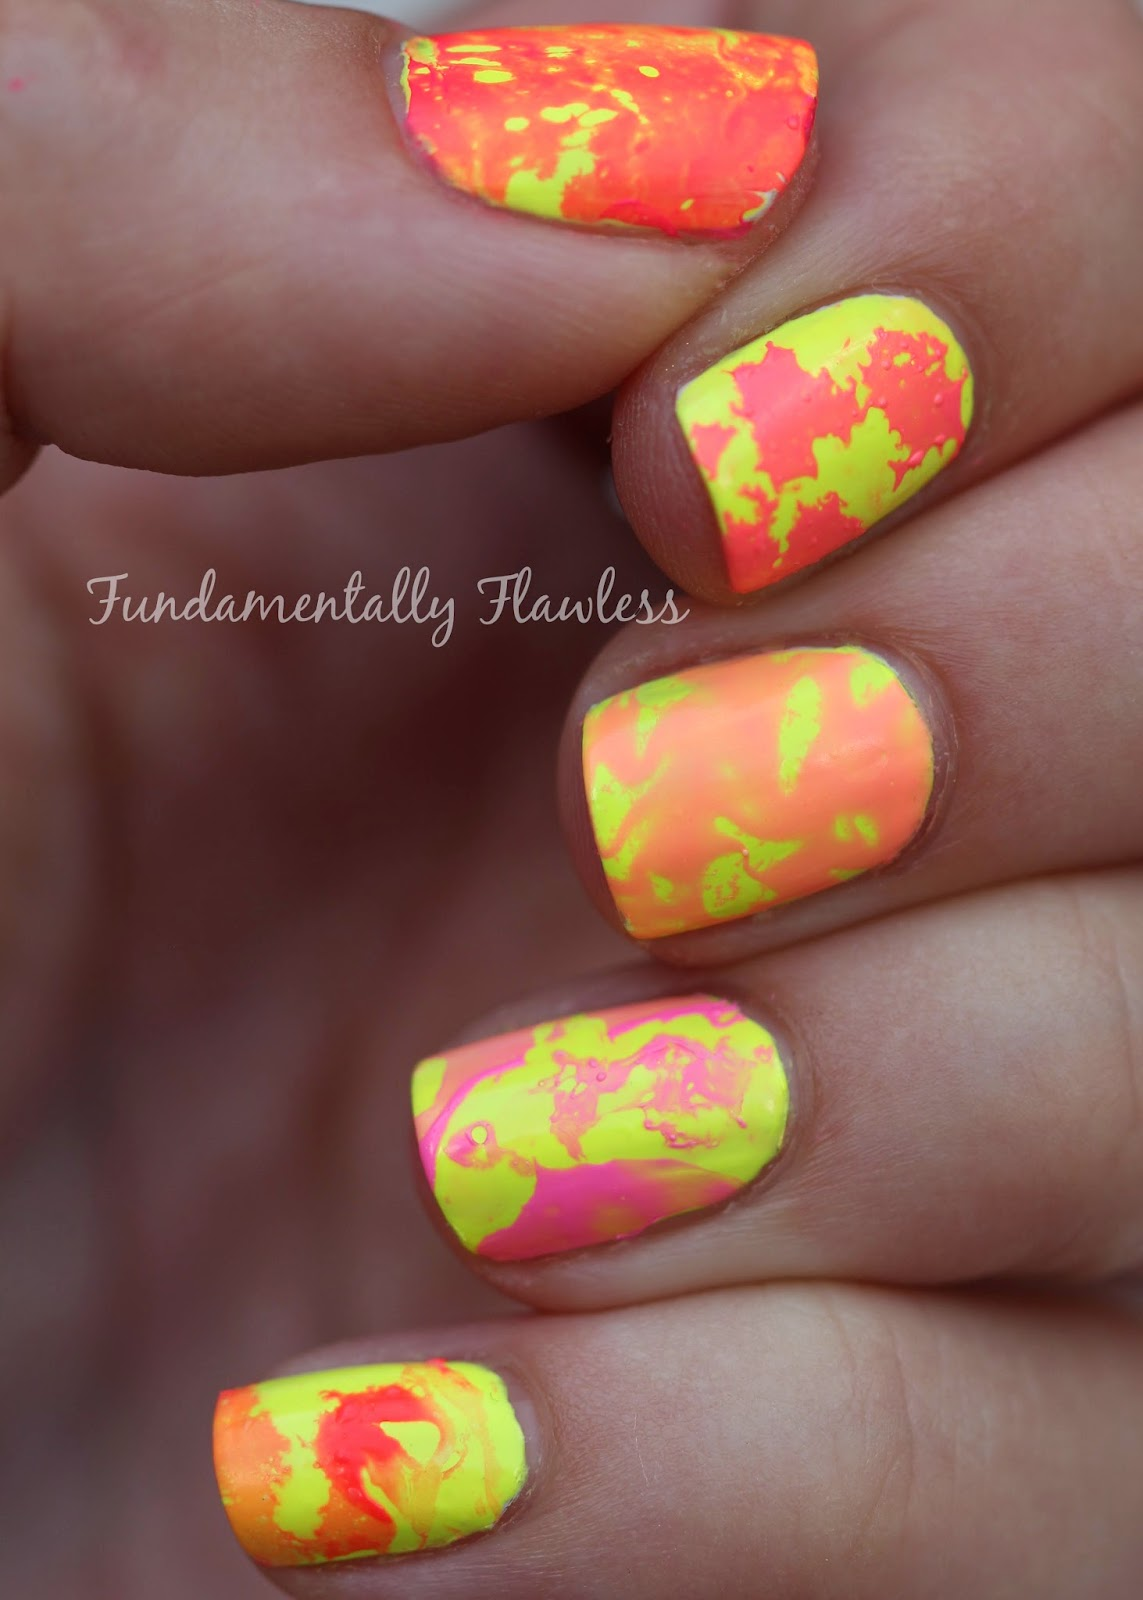 Fundamentally Flawless: Triplet Nails: Water Spotted With